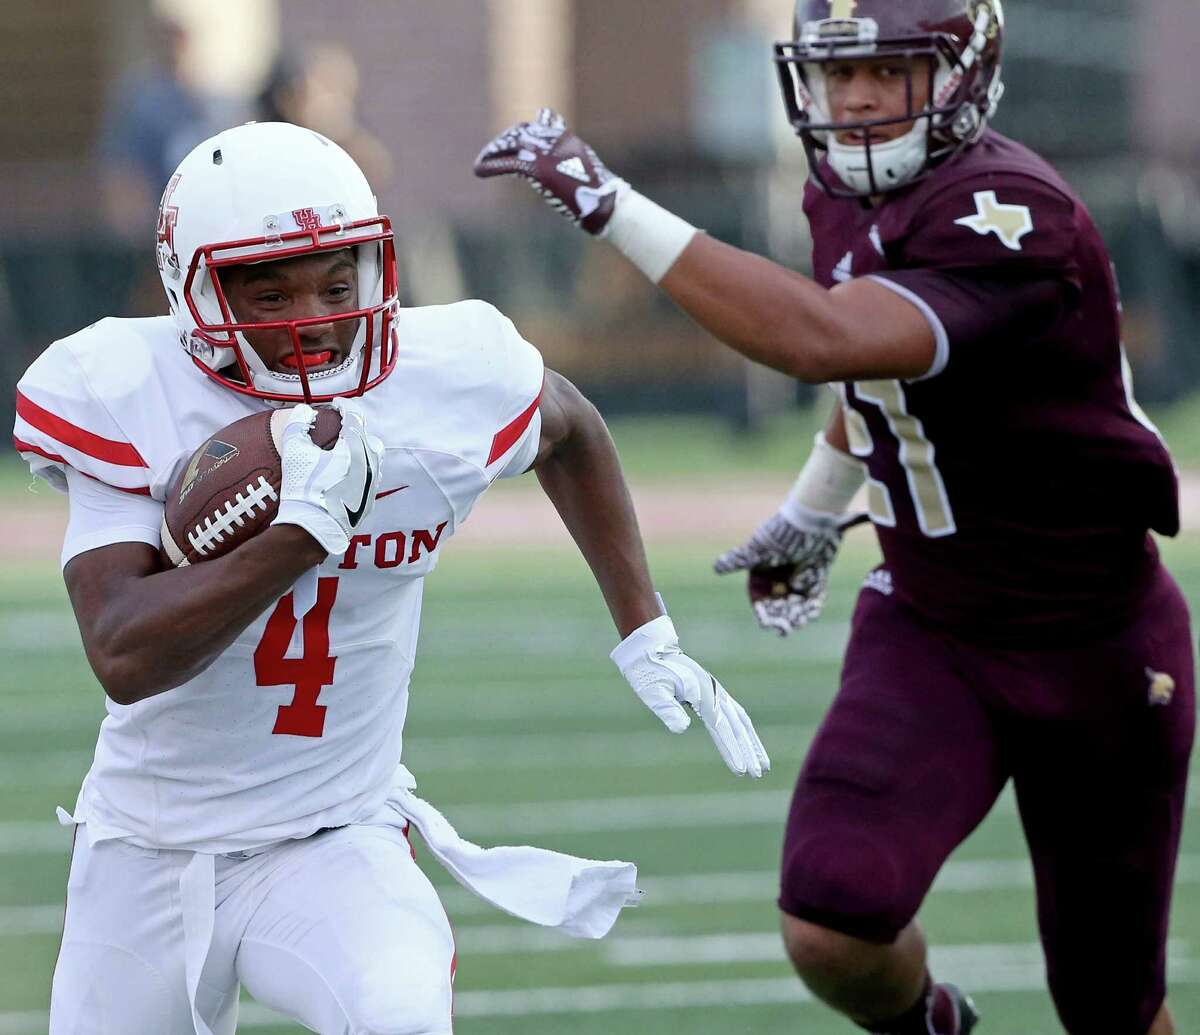 Houston Cougars' D'Eriq King heads to the end zone for a touchdown ahead of Texas State Bobcats defensive back Gavin Graham during first half action Saturday Sept. 24, 2016 at Bobcat Stadium in San Marcos, Tx.